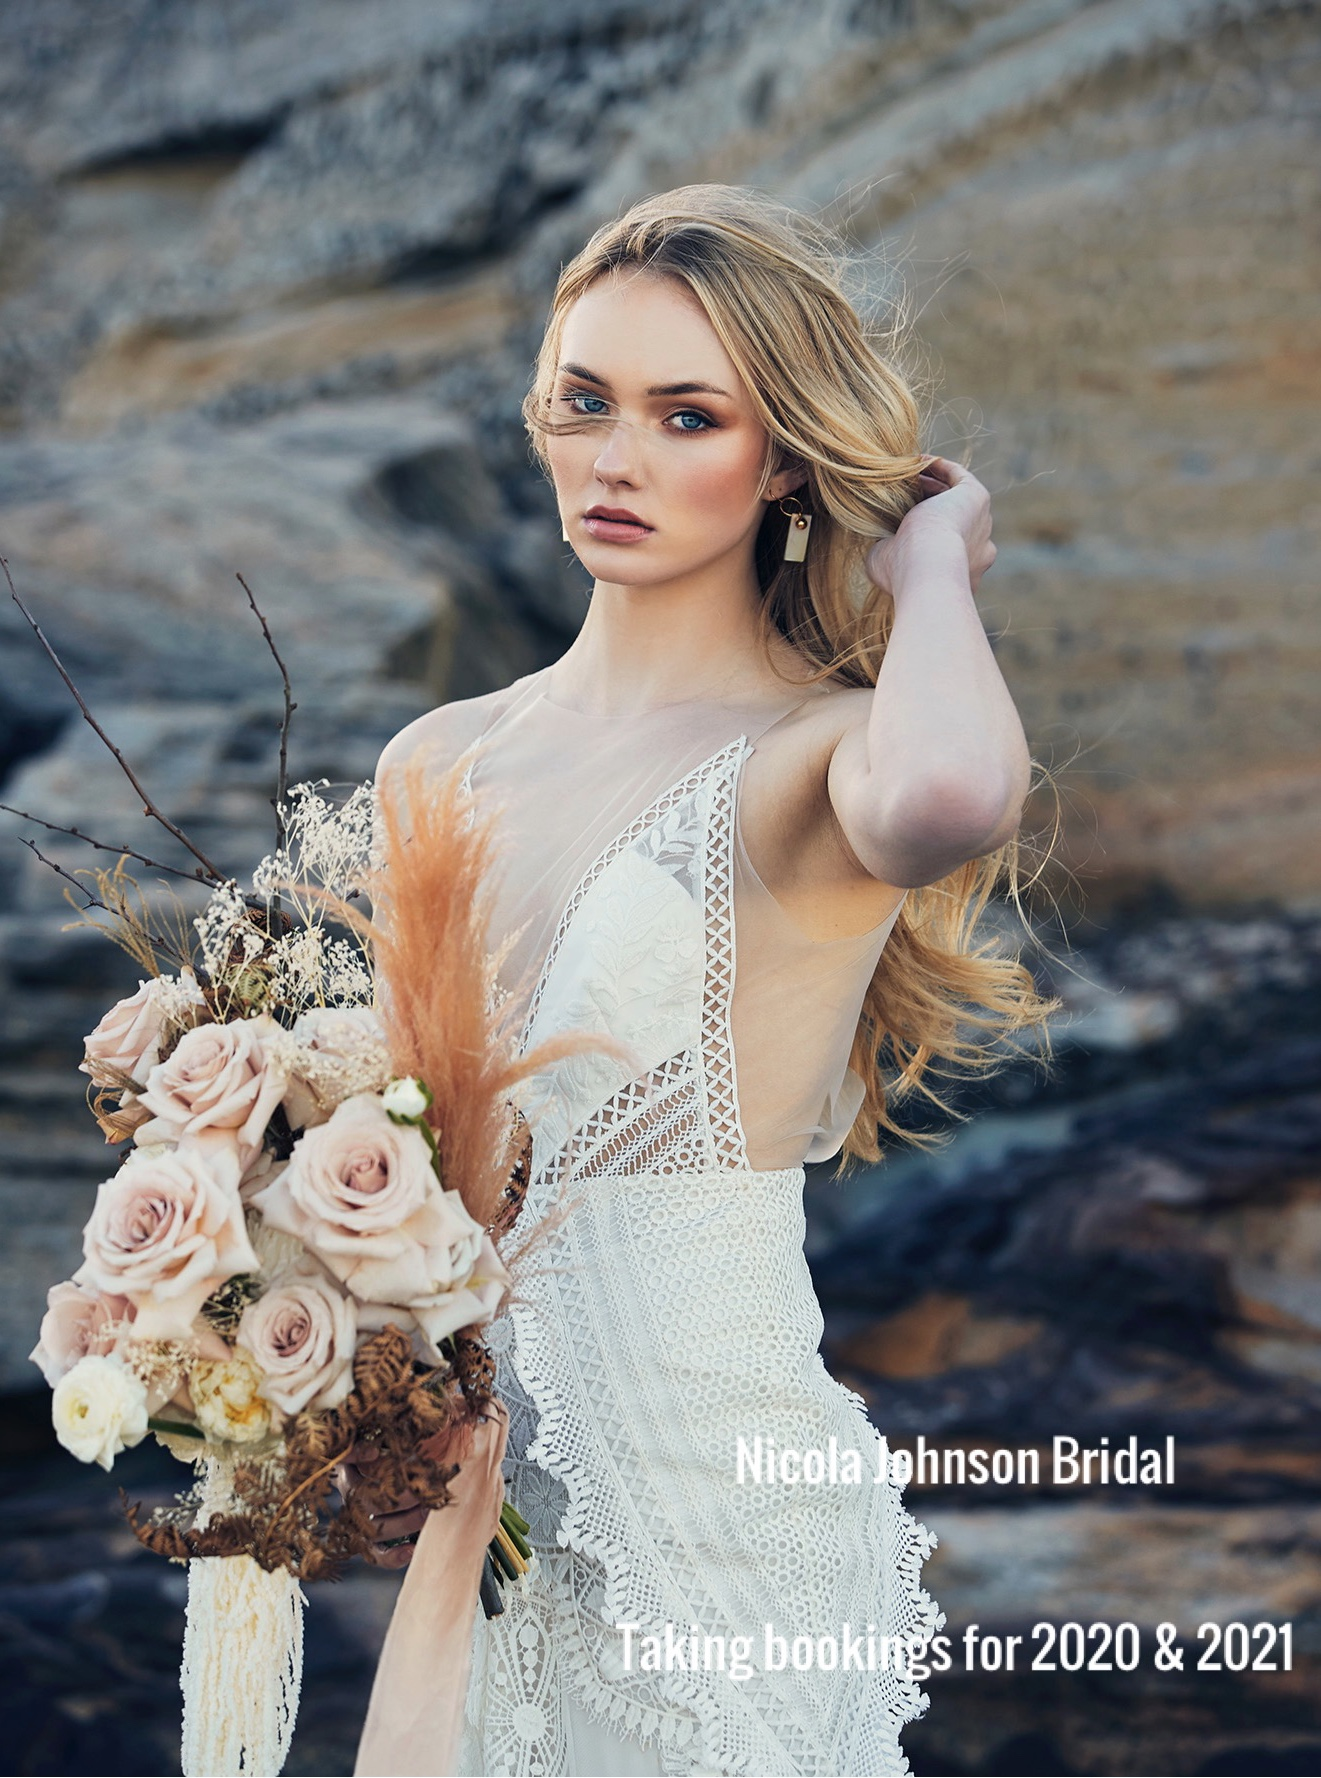 The Bridal Hair Makeup Trial Sydney